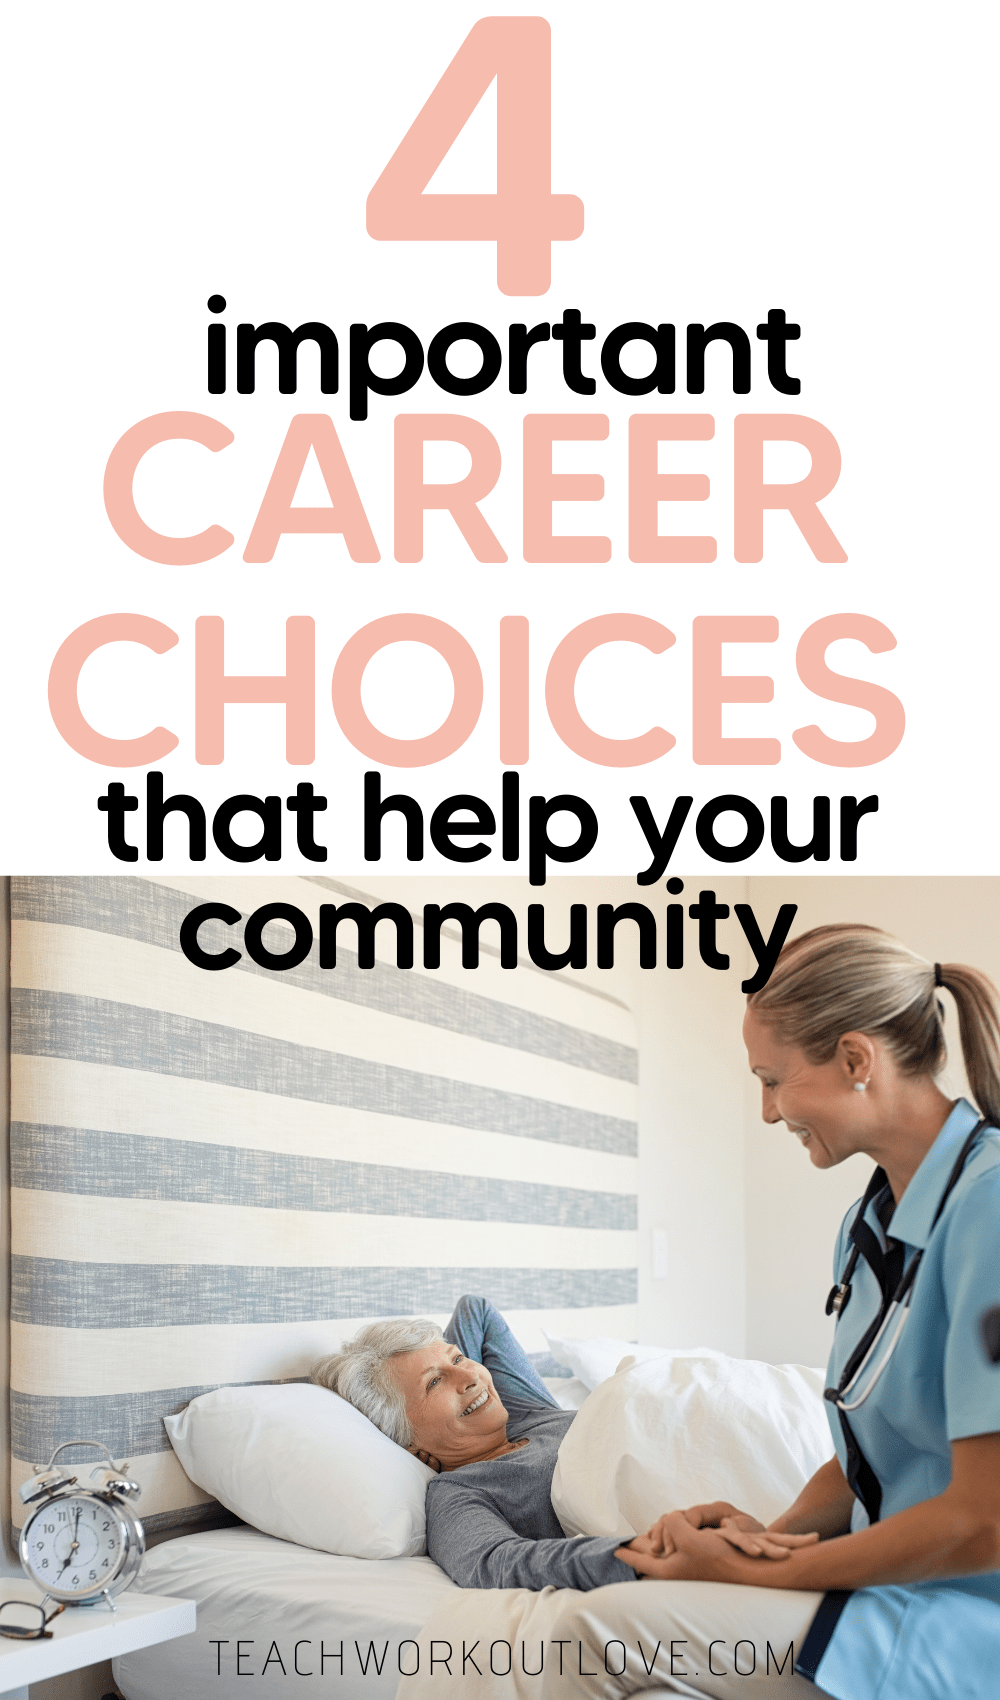 Are you interested in picking a career path that helps others? Here are the top 4 career choices that will help your community.